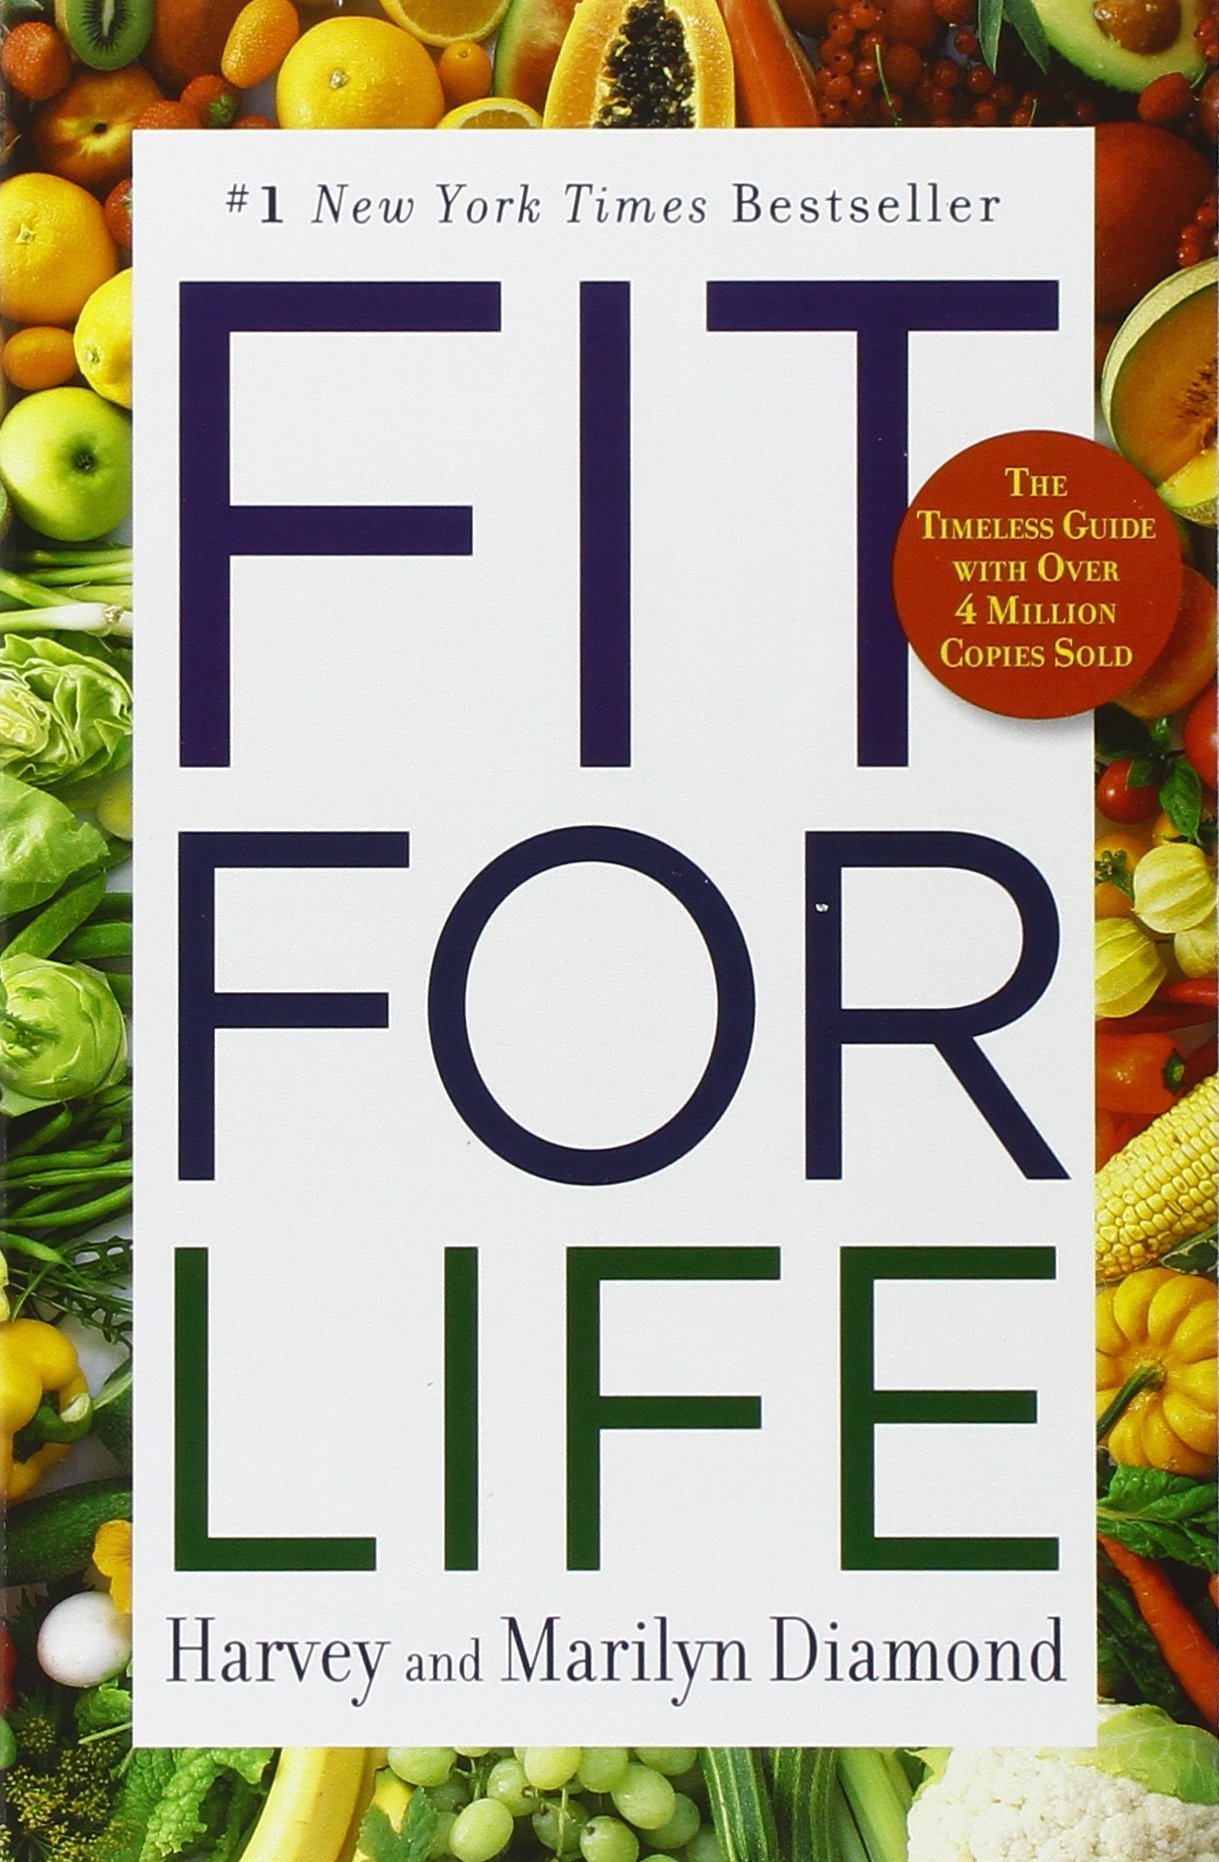 Fit for life harvey diamond marilyn diamond 9780446553643 amazon fit for life harvey diamond marilyn diamond 9780446553643 amazon books forumfinder Image collections